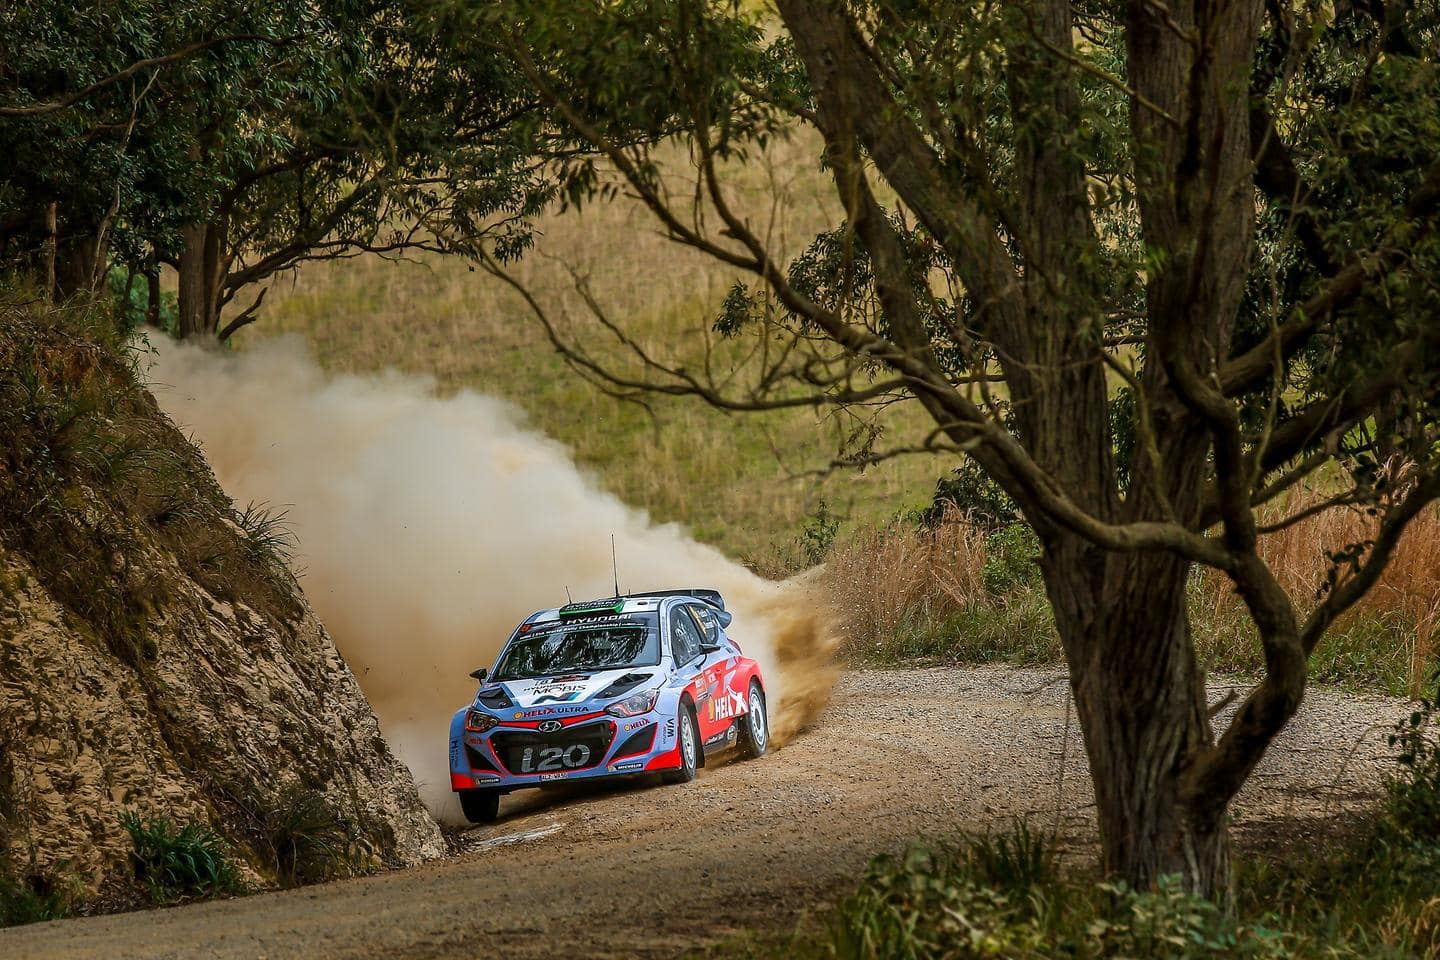 Hyundai Motorsport cements Championship position after strong run in WRC Rally Australia